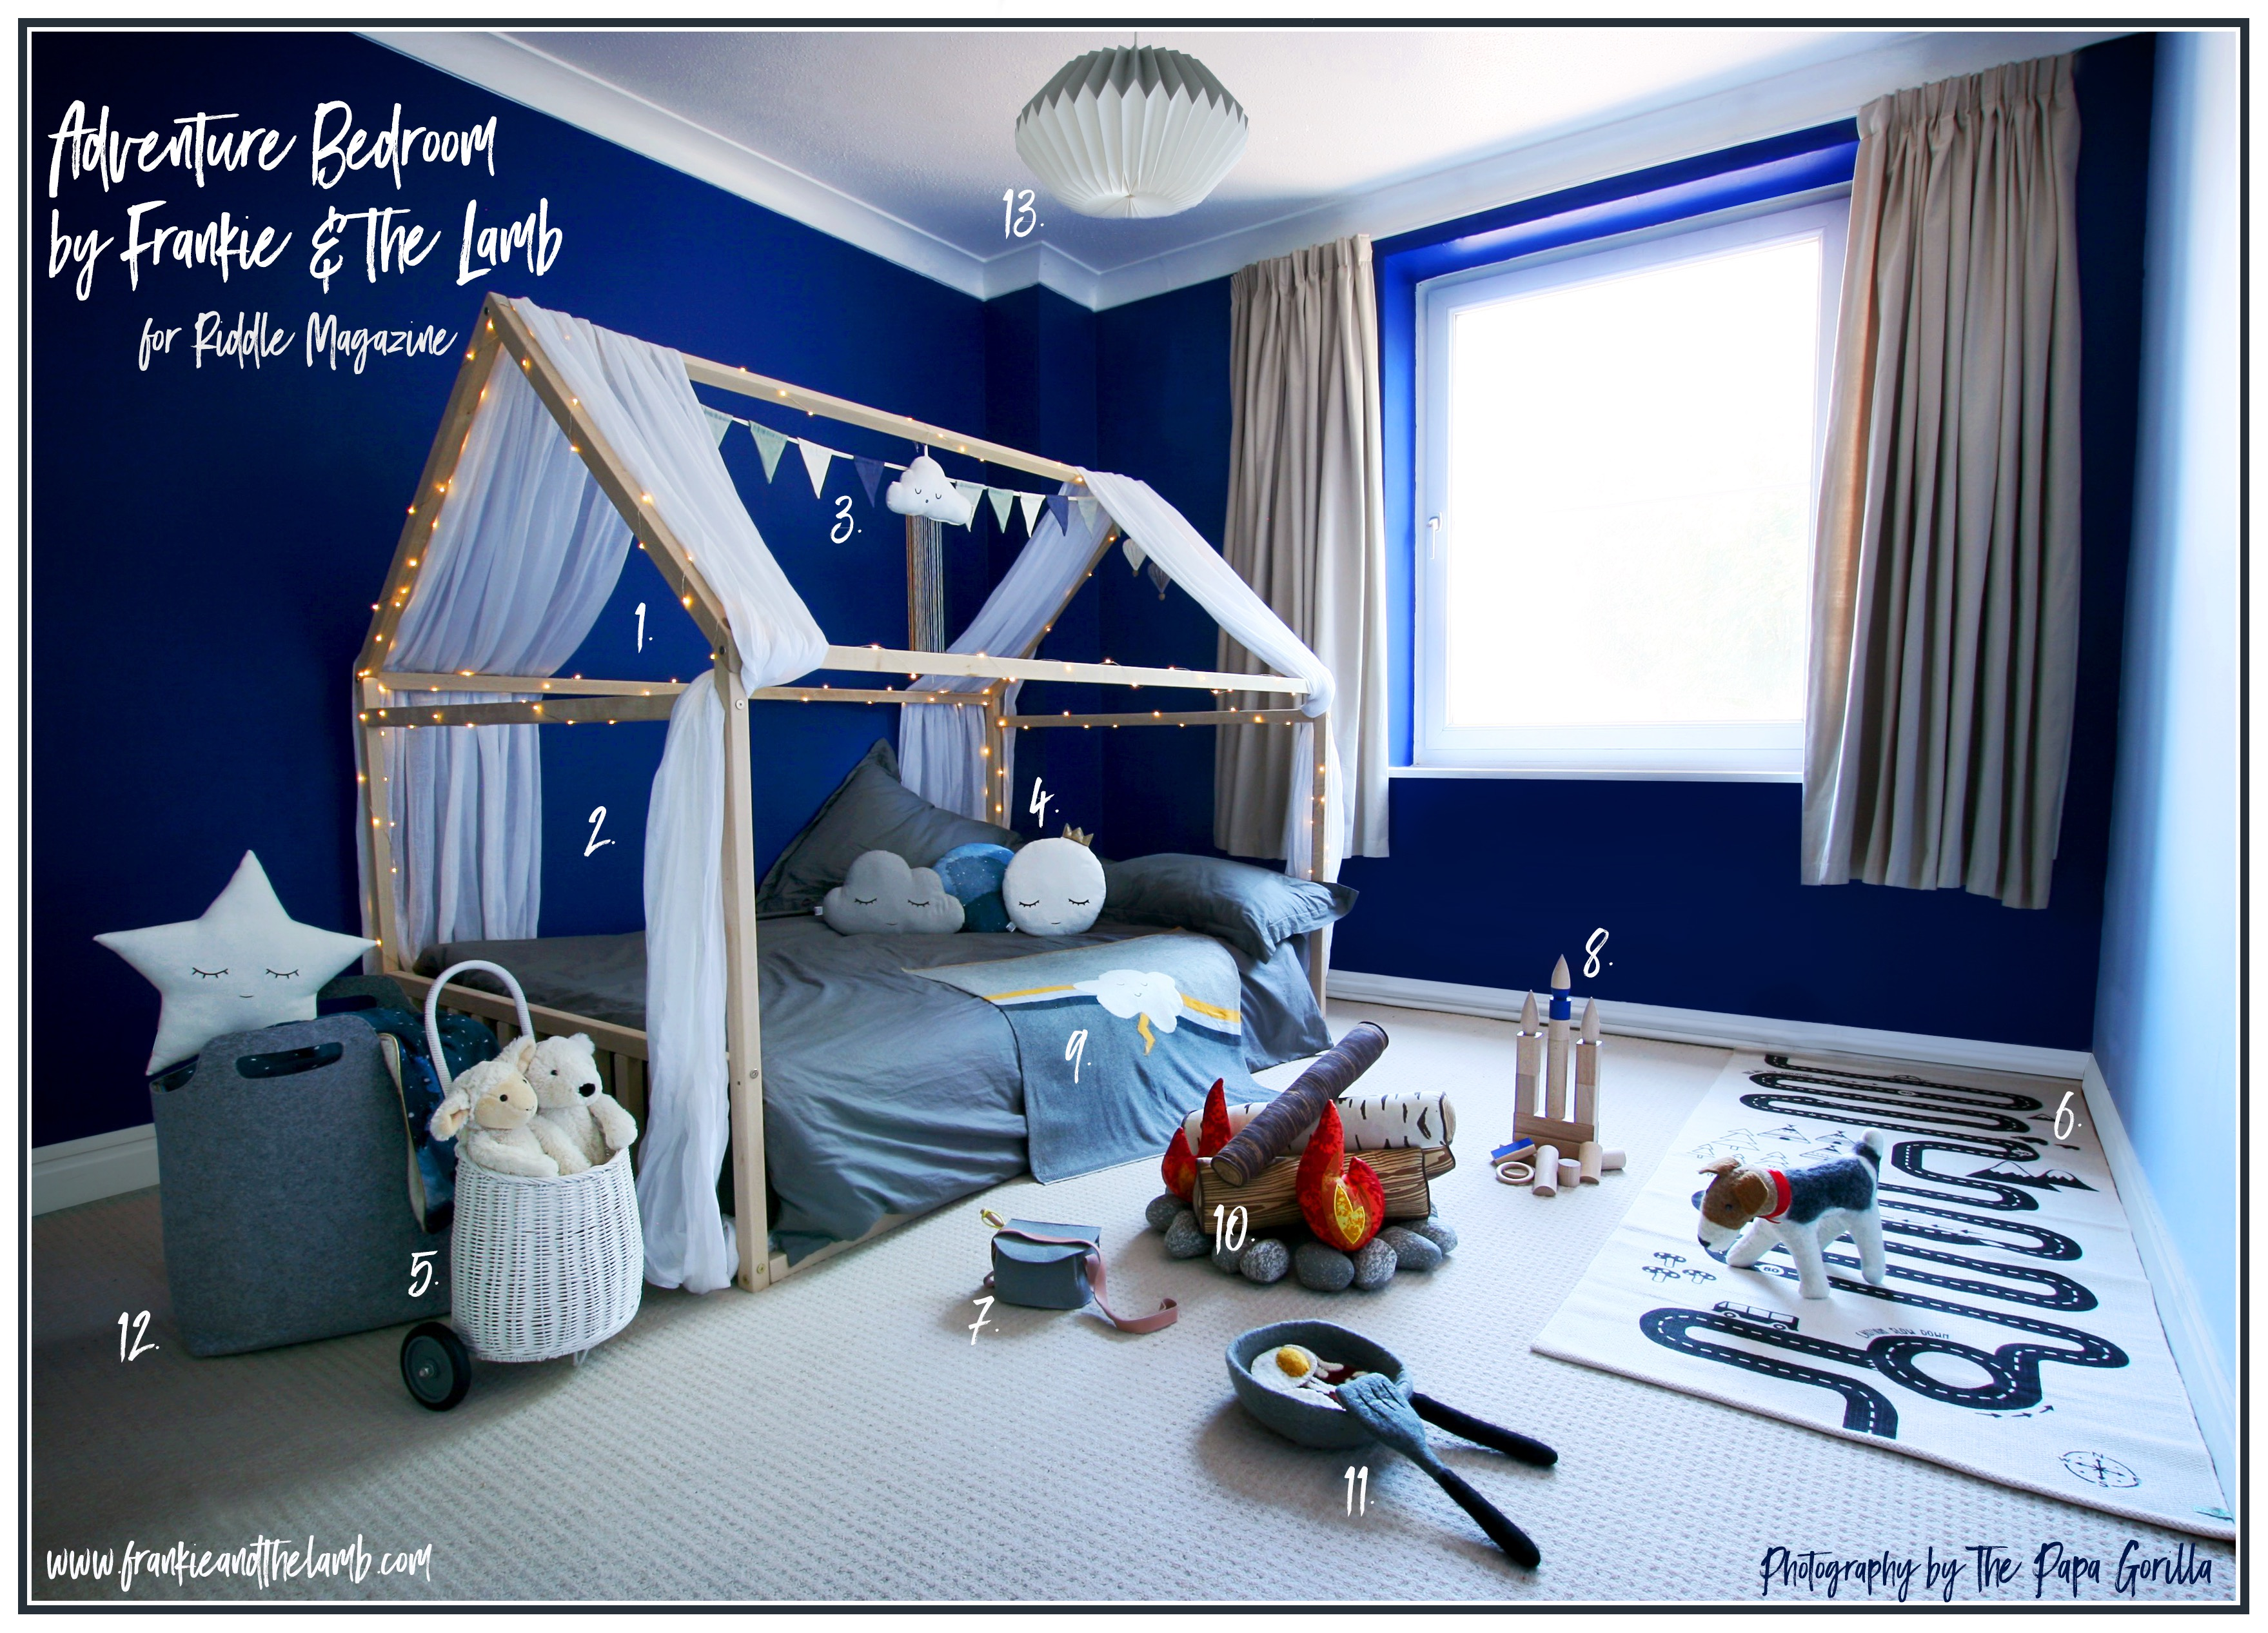 Frankie & the Lamb gave the nursery a makeover. The Adventure Bedroom features child-friendly paint and a Montessori floor bed Copyright The Papa Gorilla